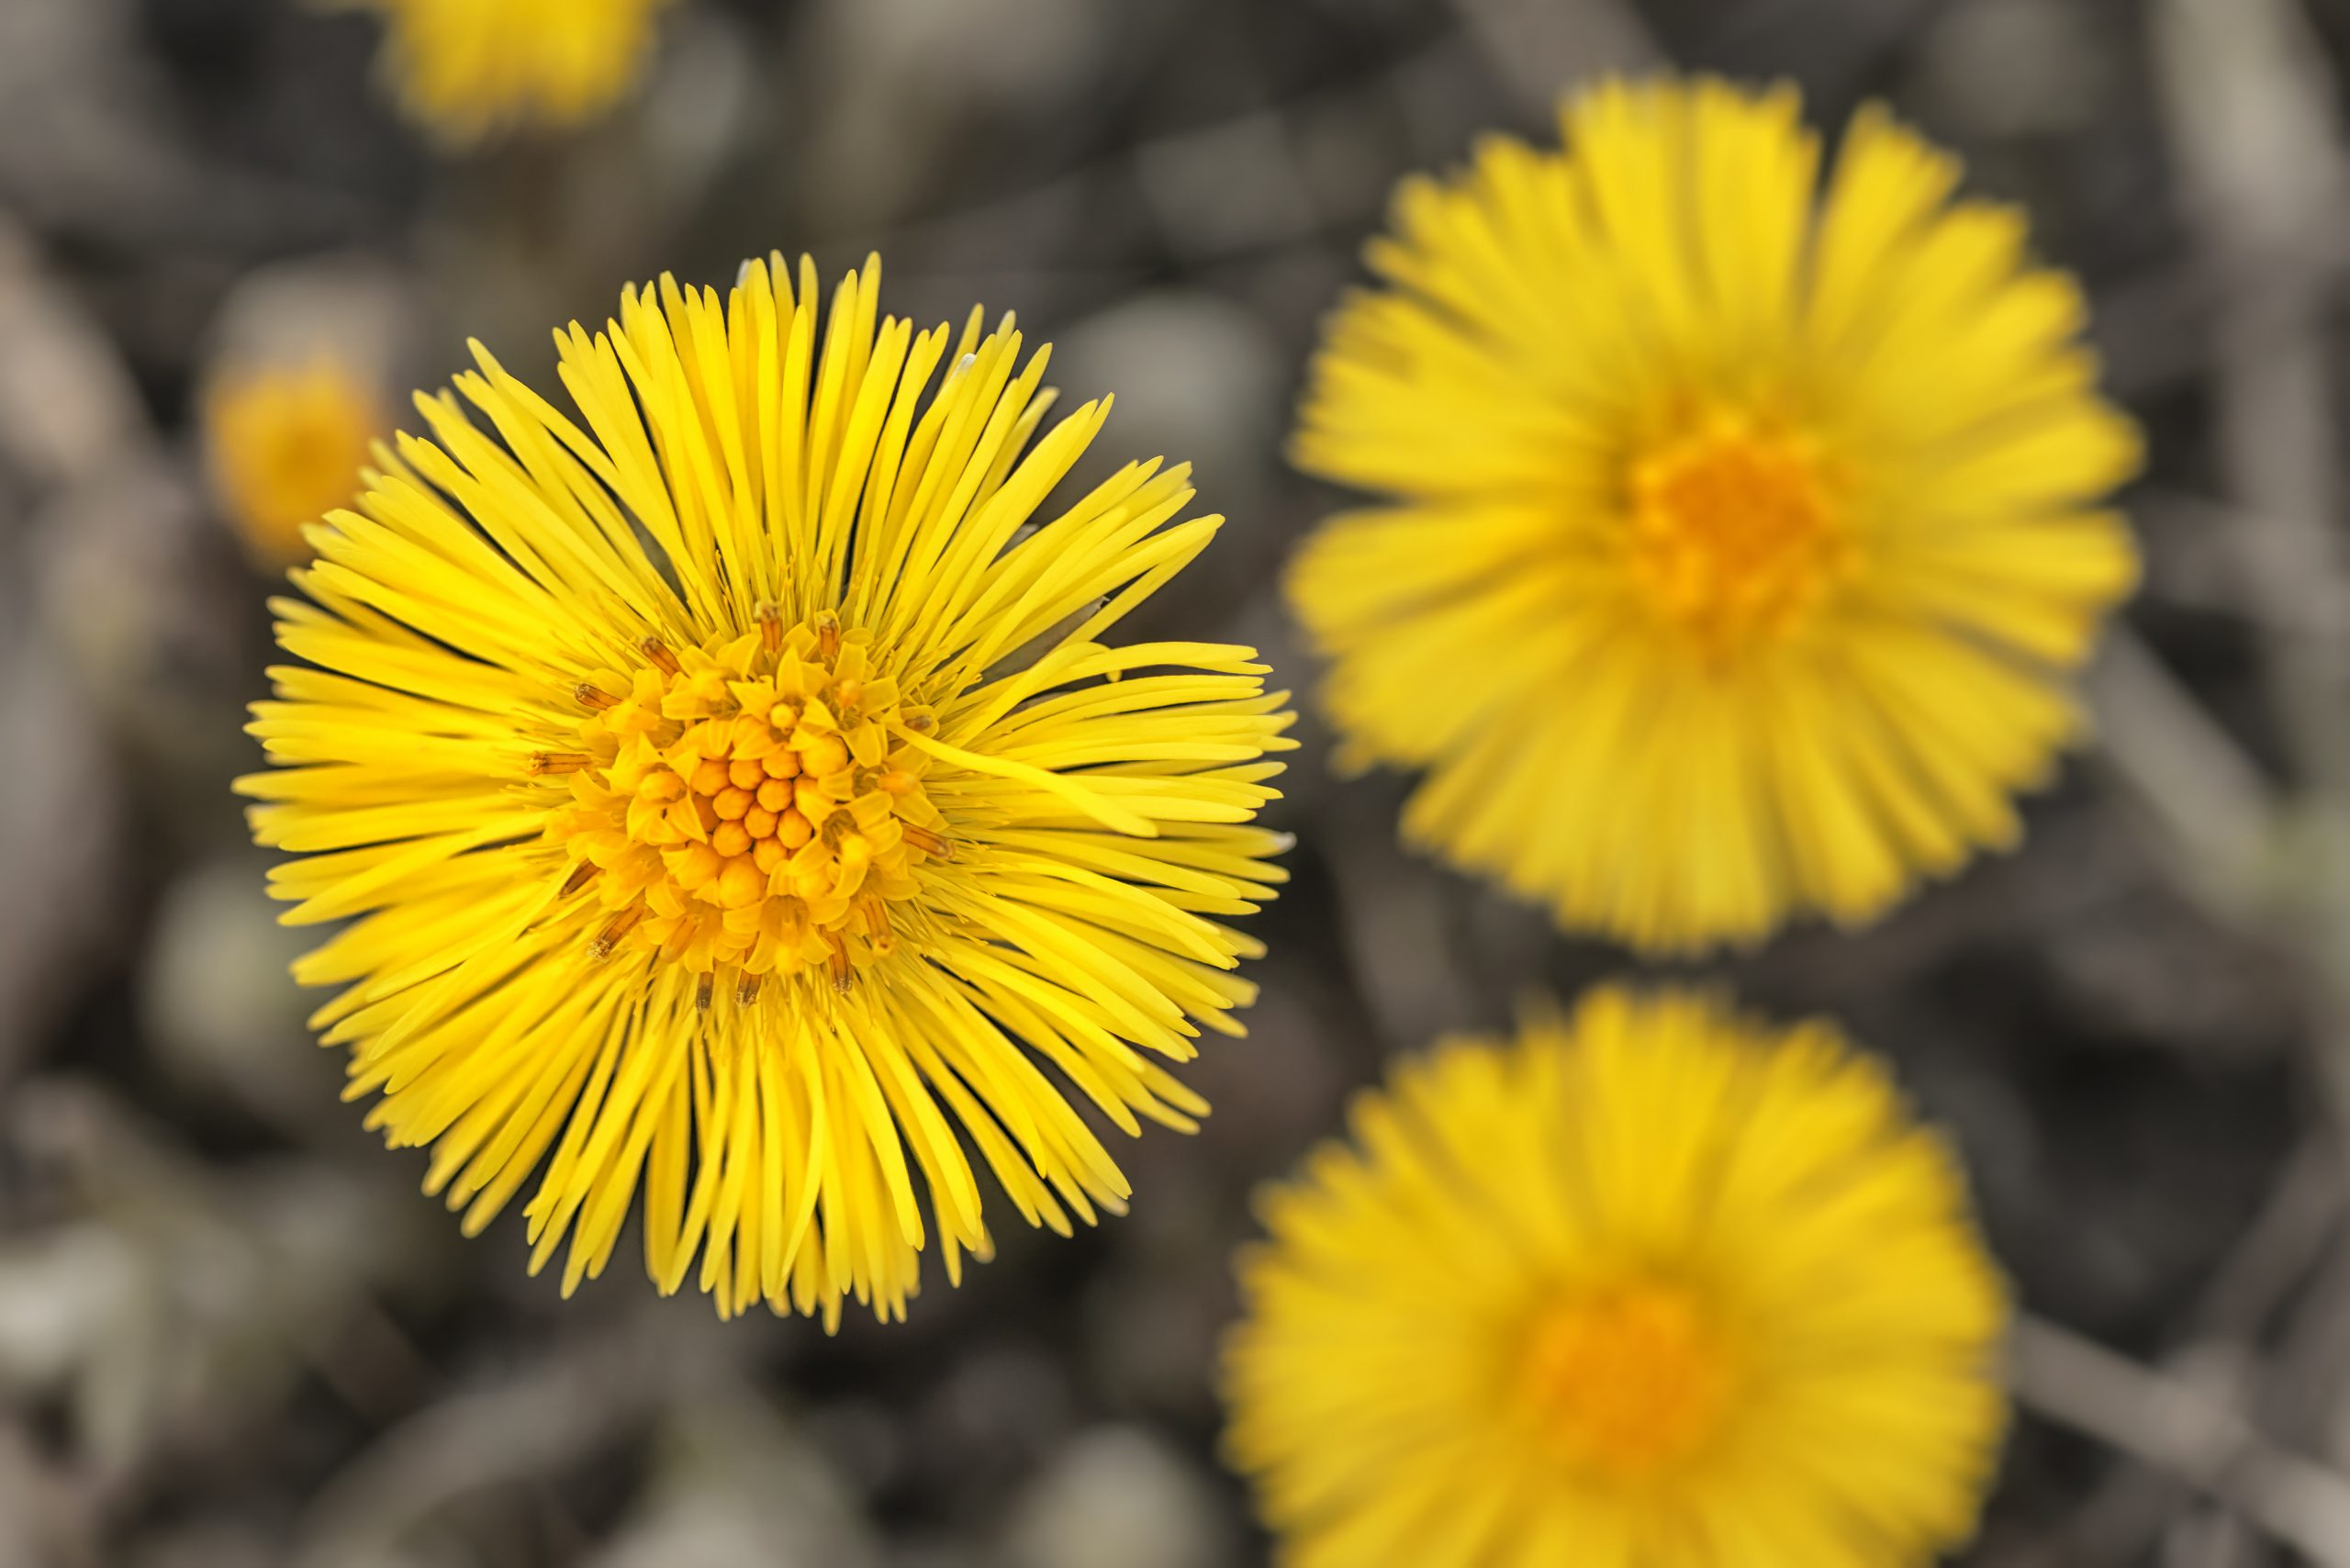 Four Herbs to Protect Our Bodies As We Enter Flu Season – Coltsfoot